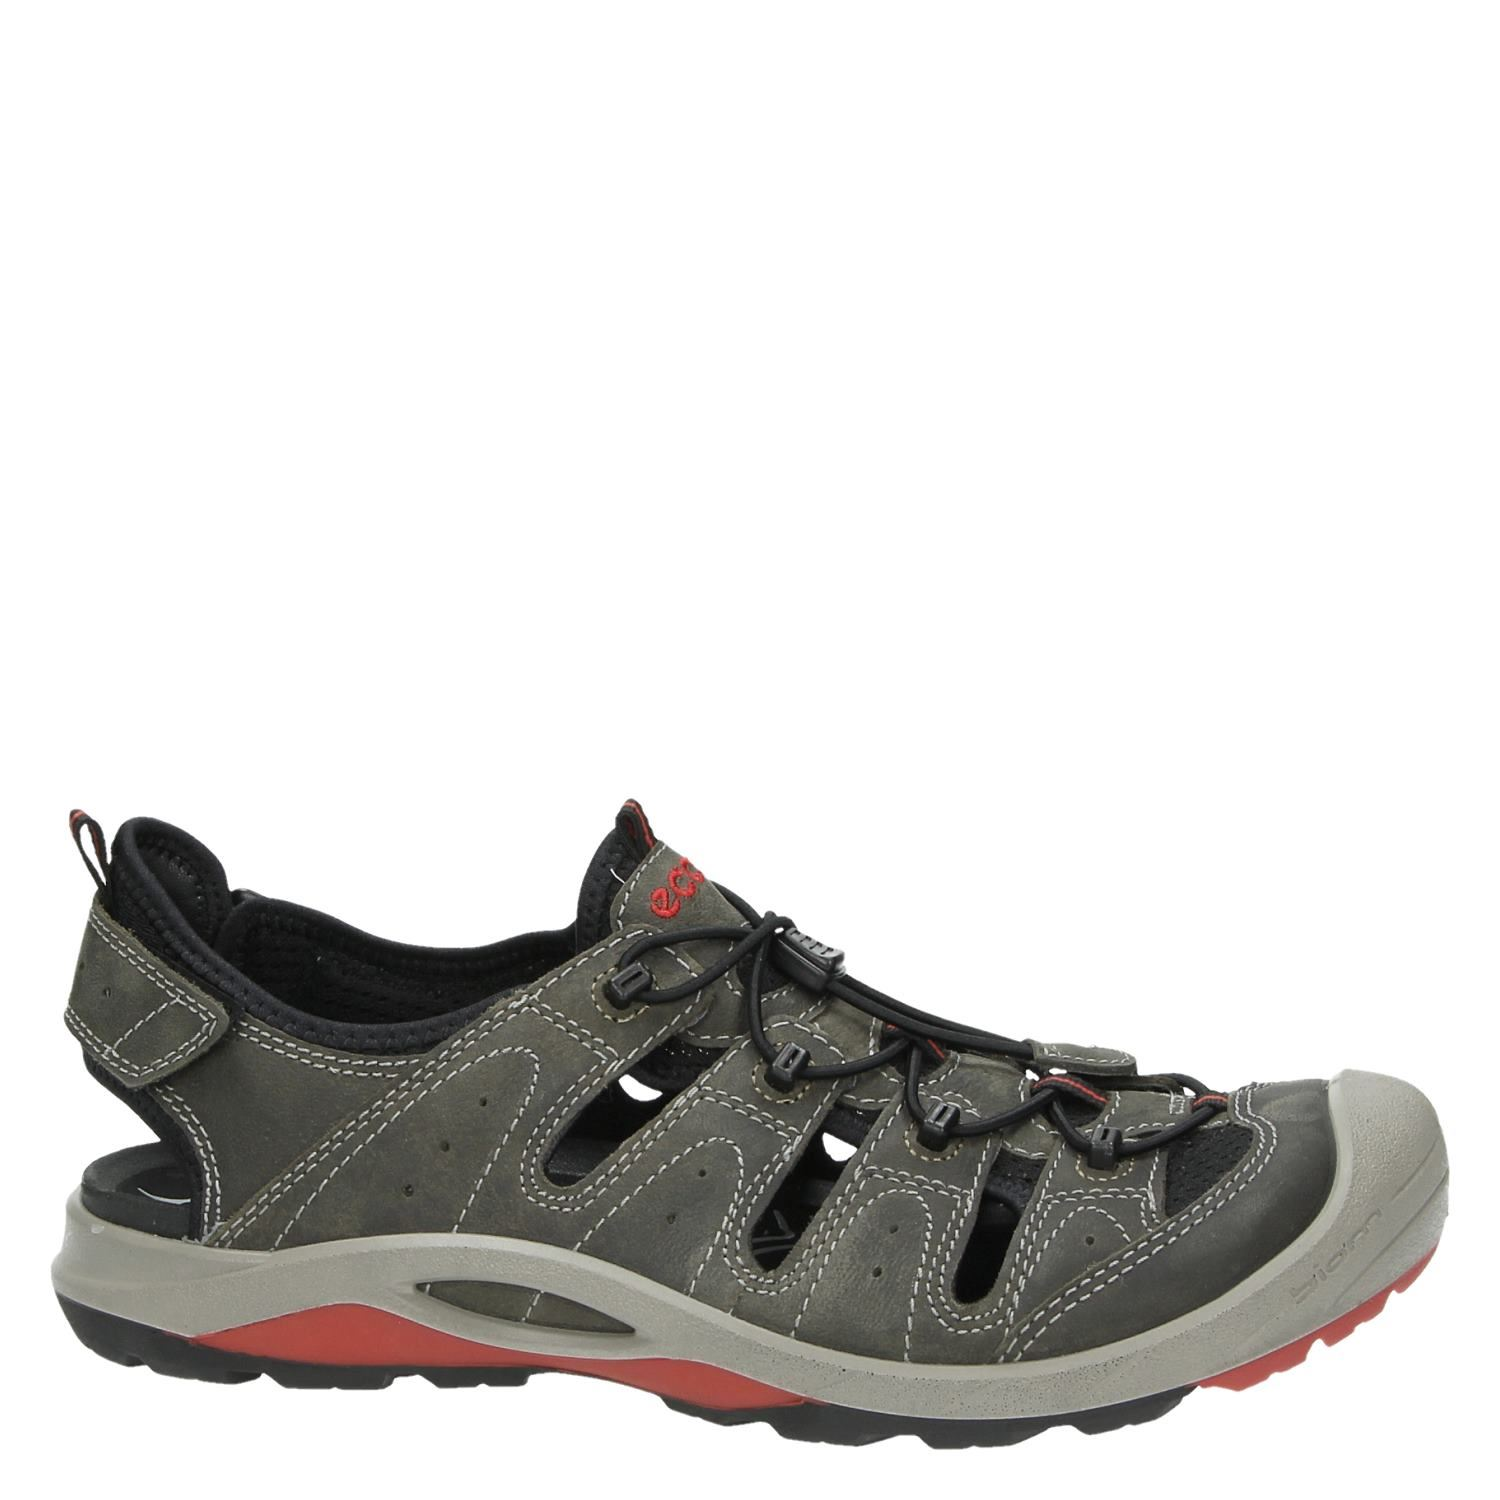 Ecco Shoes Usa Online